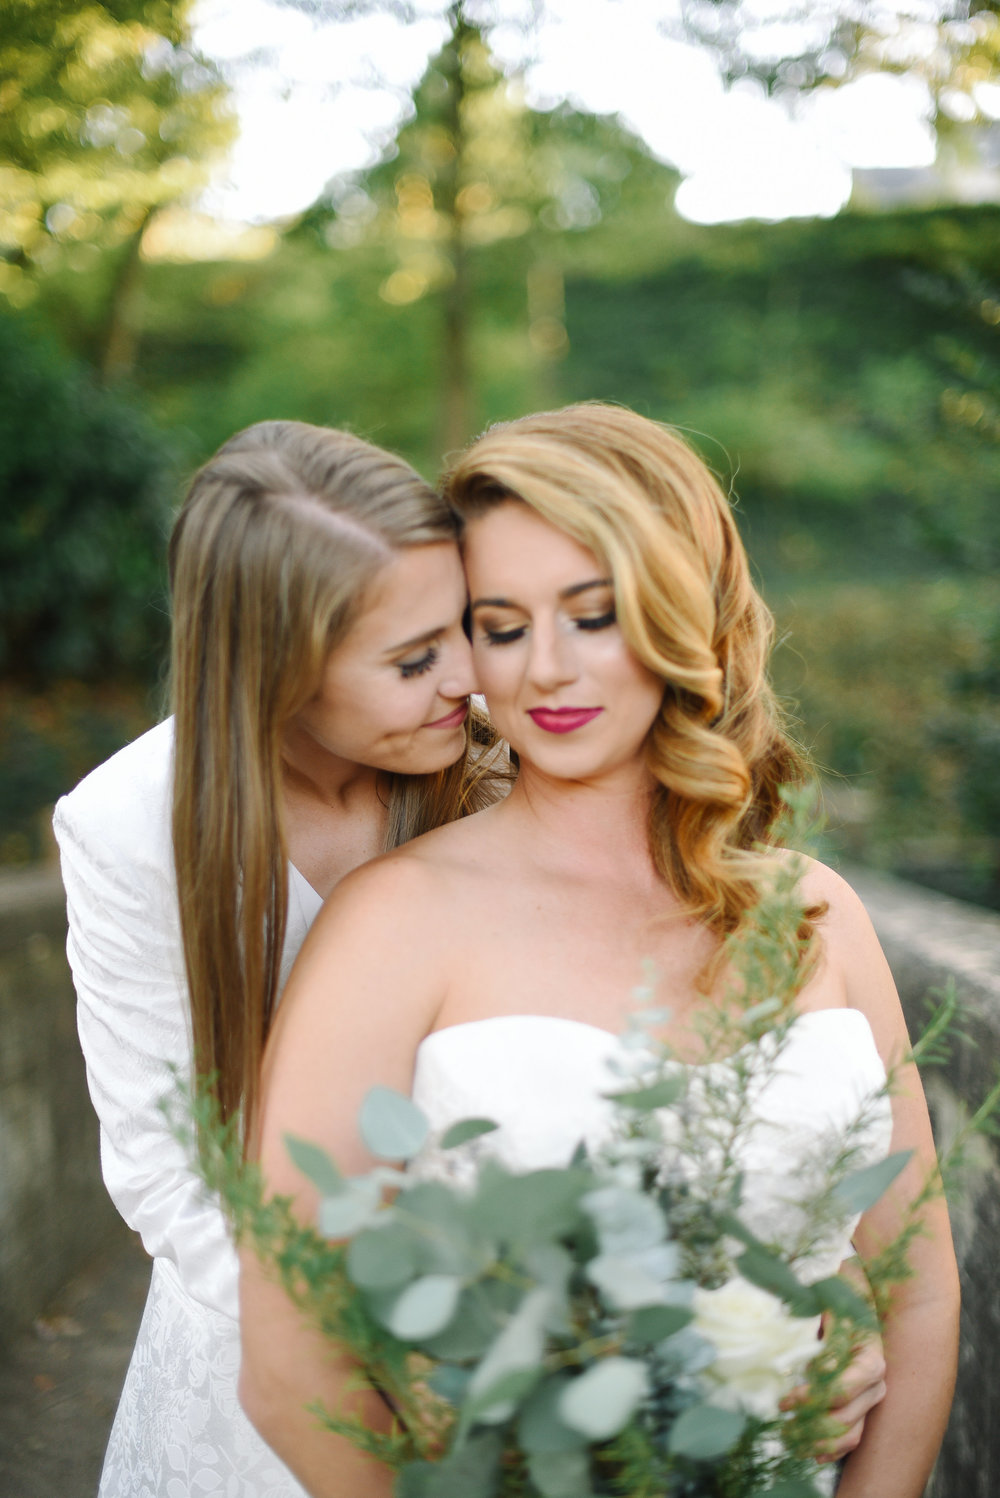 Lesbian LGBTQ Best Friends in Love Wedding Inspiration in Greenville South Carolina by House of Ivory and Elizabeth Testa Photography